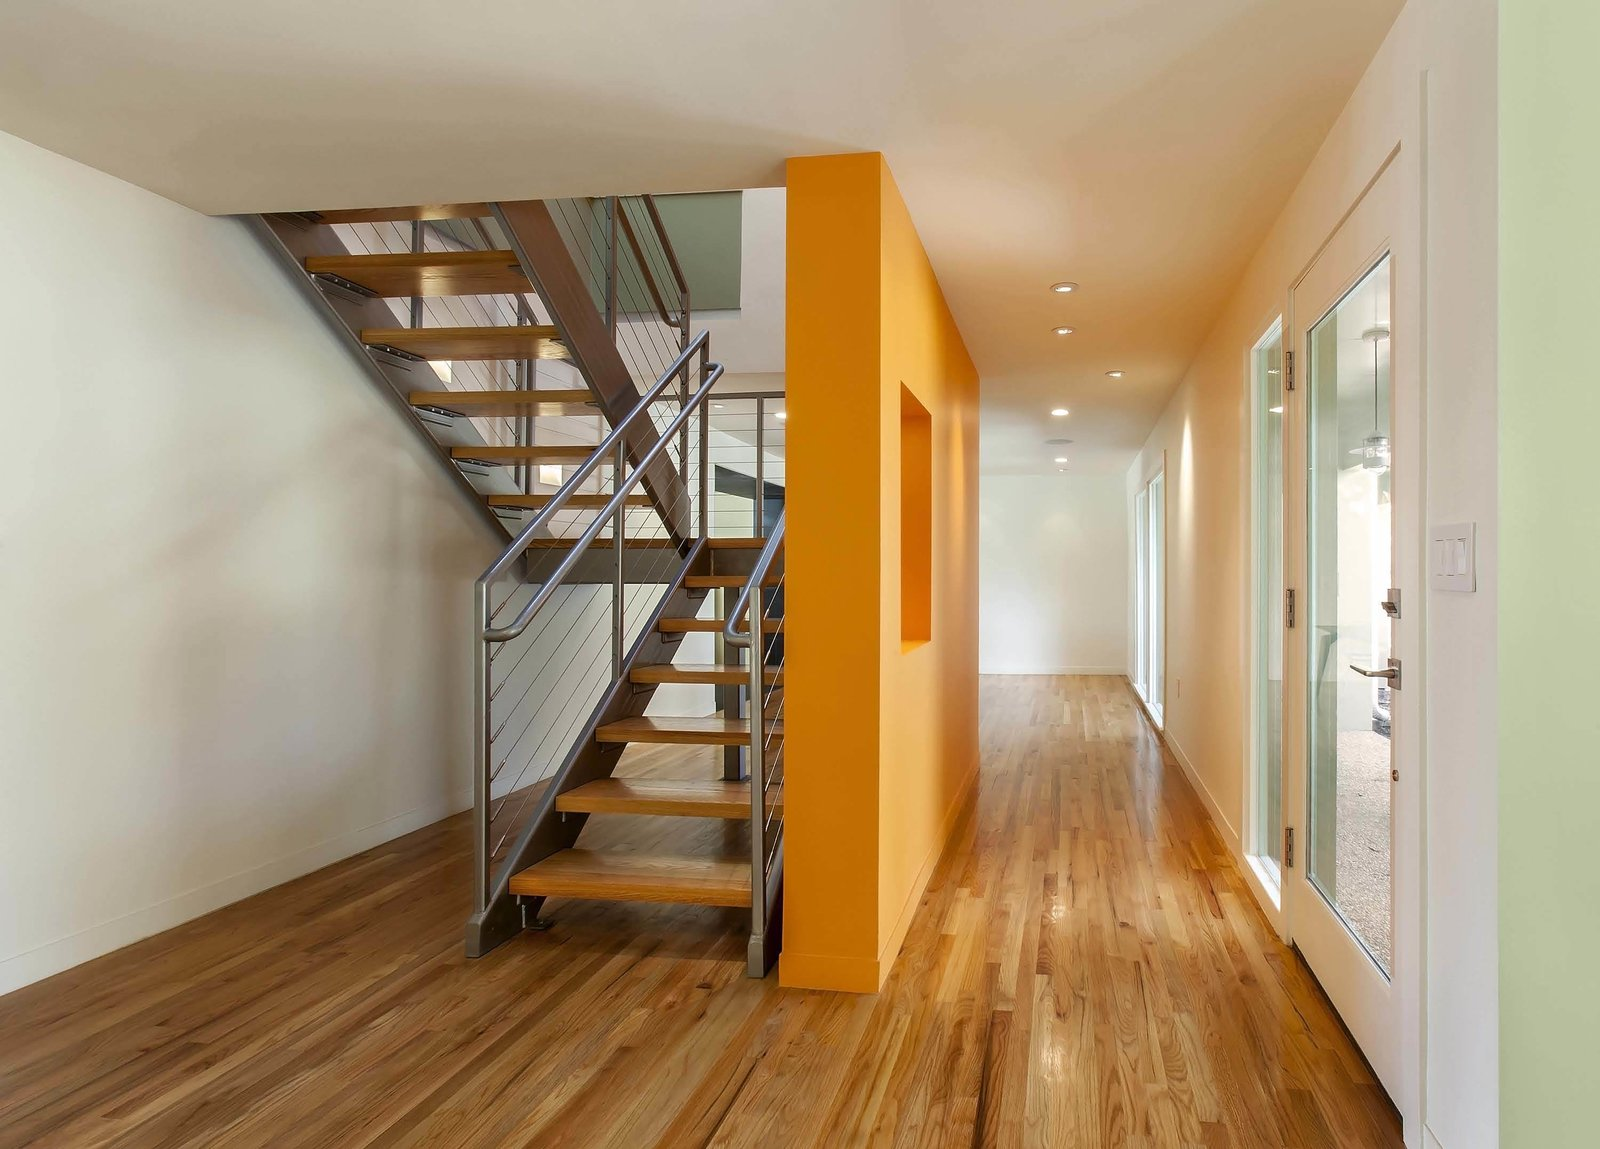 Back in the entry foyer, the architects removed a fully enclosed stair to open up the interior. An operable sunlight just above the stairwell allows hot air to escape, inducing a cooling airflow below and naturally ventilating the space. The space in the image's foreground, located directly adjacent to the kitchen, is now the formal dining area.  A Renovation Reconnects a House to its Louisiana Landscape by Zachary Edelson